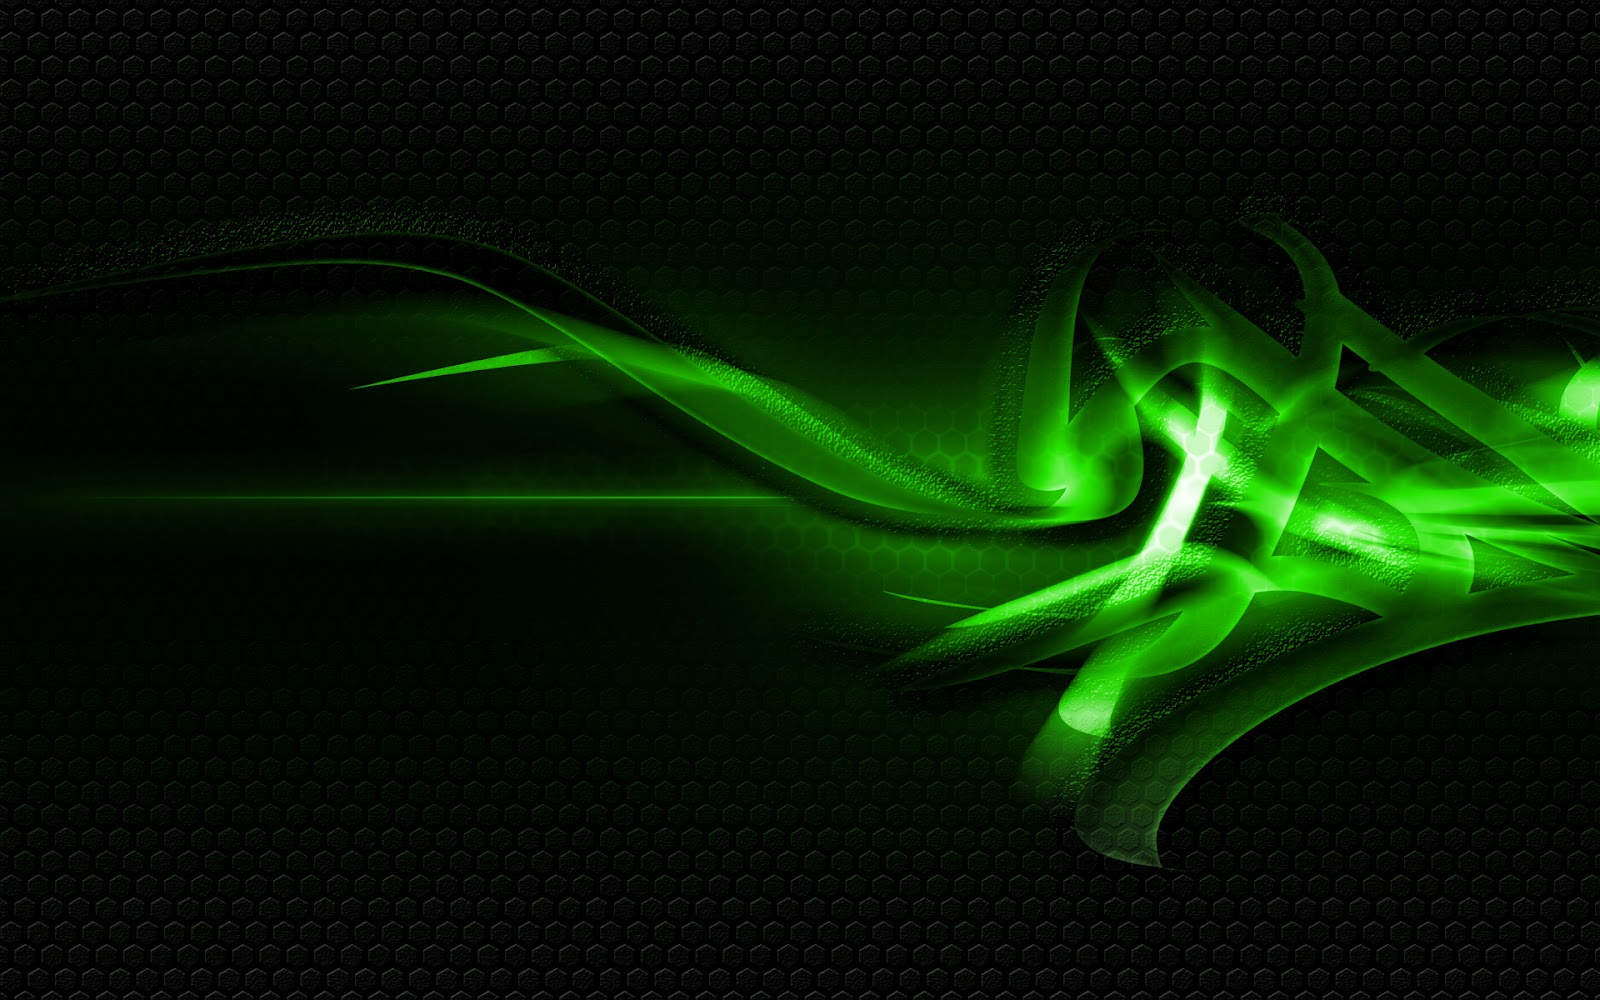 http://2.bp.blogspot.com/-_akHK7A_2oo/T9hOyloSToI/AAAAAAAAAJ0/uWuULs85Z1g/s1600/hd+wallpapers+abstract+art-2.jpg